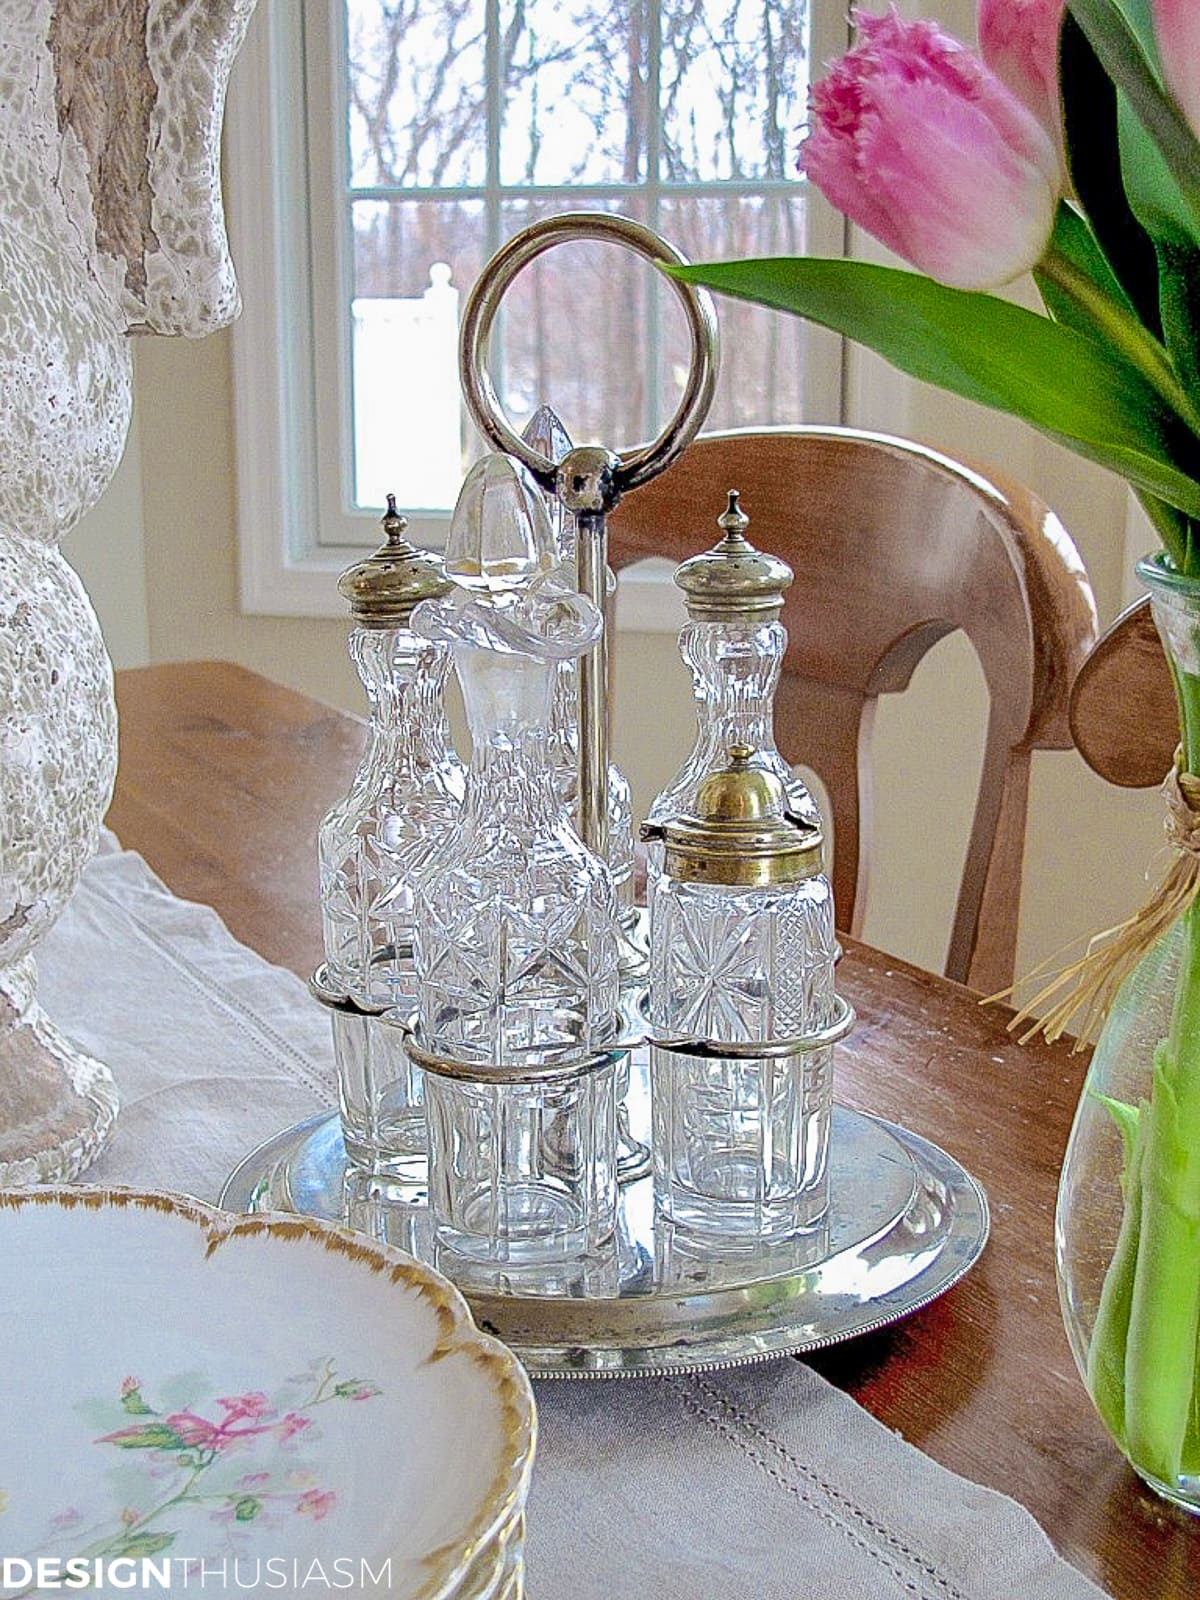 vintage cruet set in a french country kitchen